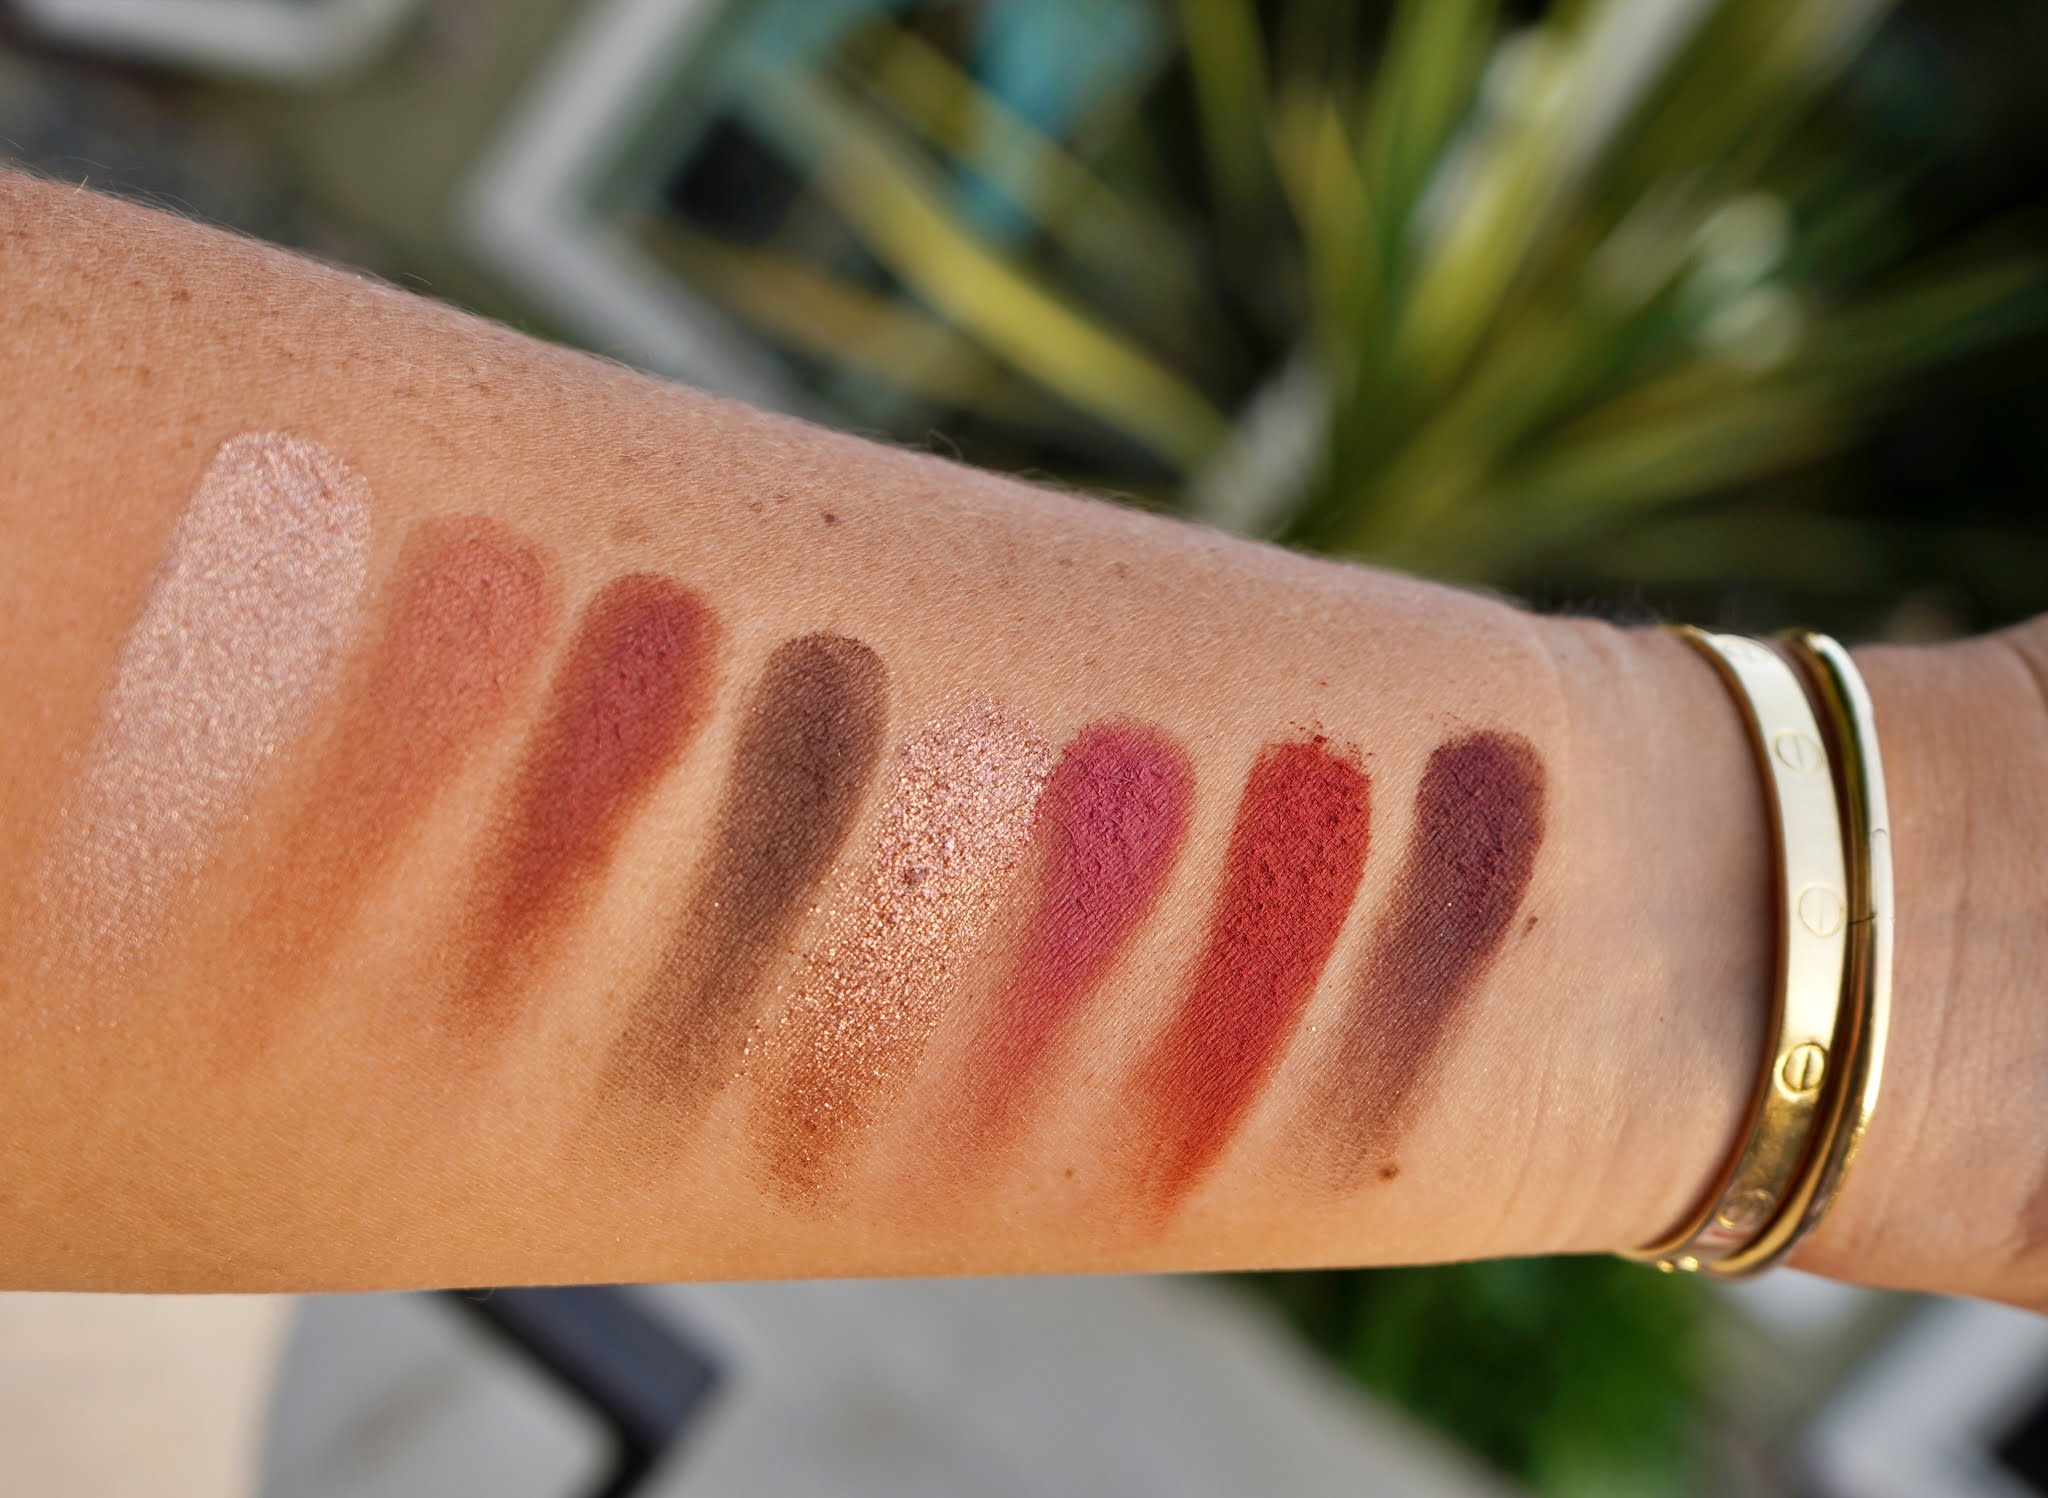 Lawless eyeshadow makeup arm swatches